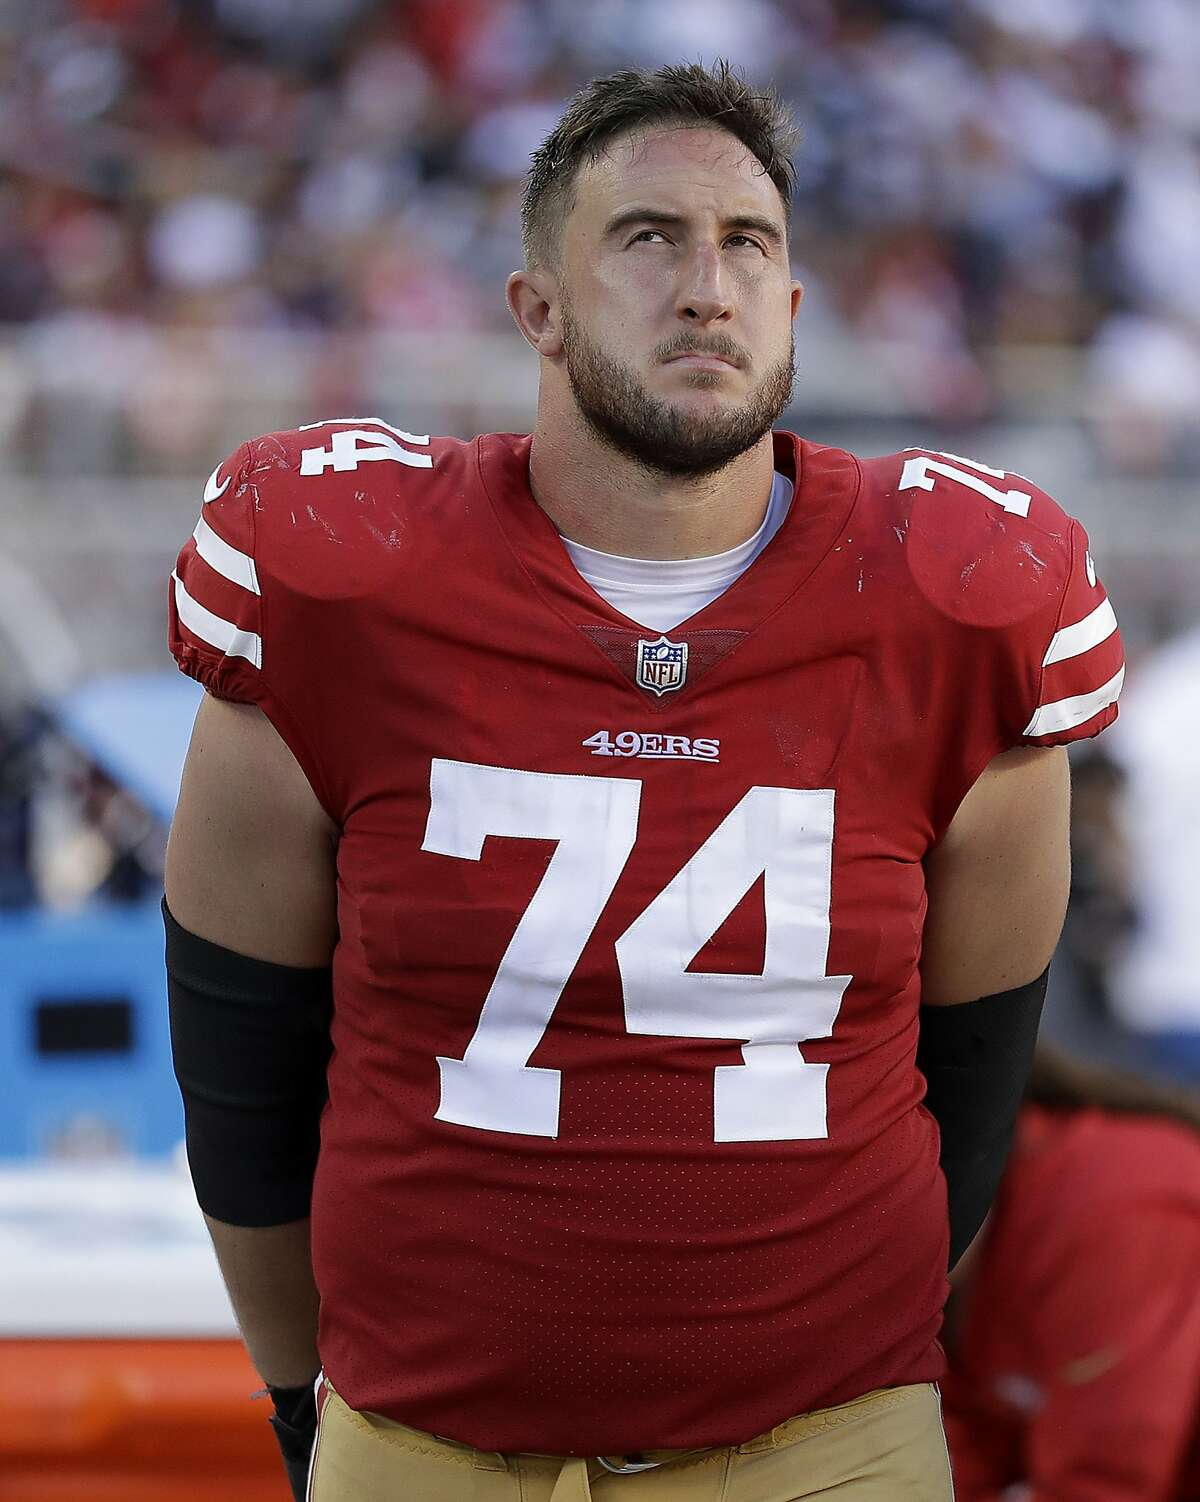 San Francisco 49ers offensive tackle Joe Staley (74) stands on the sideline against the Dallas Cowboys during the second half of an NFL football game in Santa Clara, Calif., Sunday, Oct. 22, 2017. (AP Photo/Marcio Jose Sanchez)